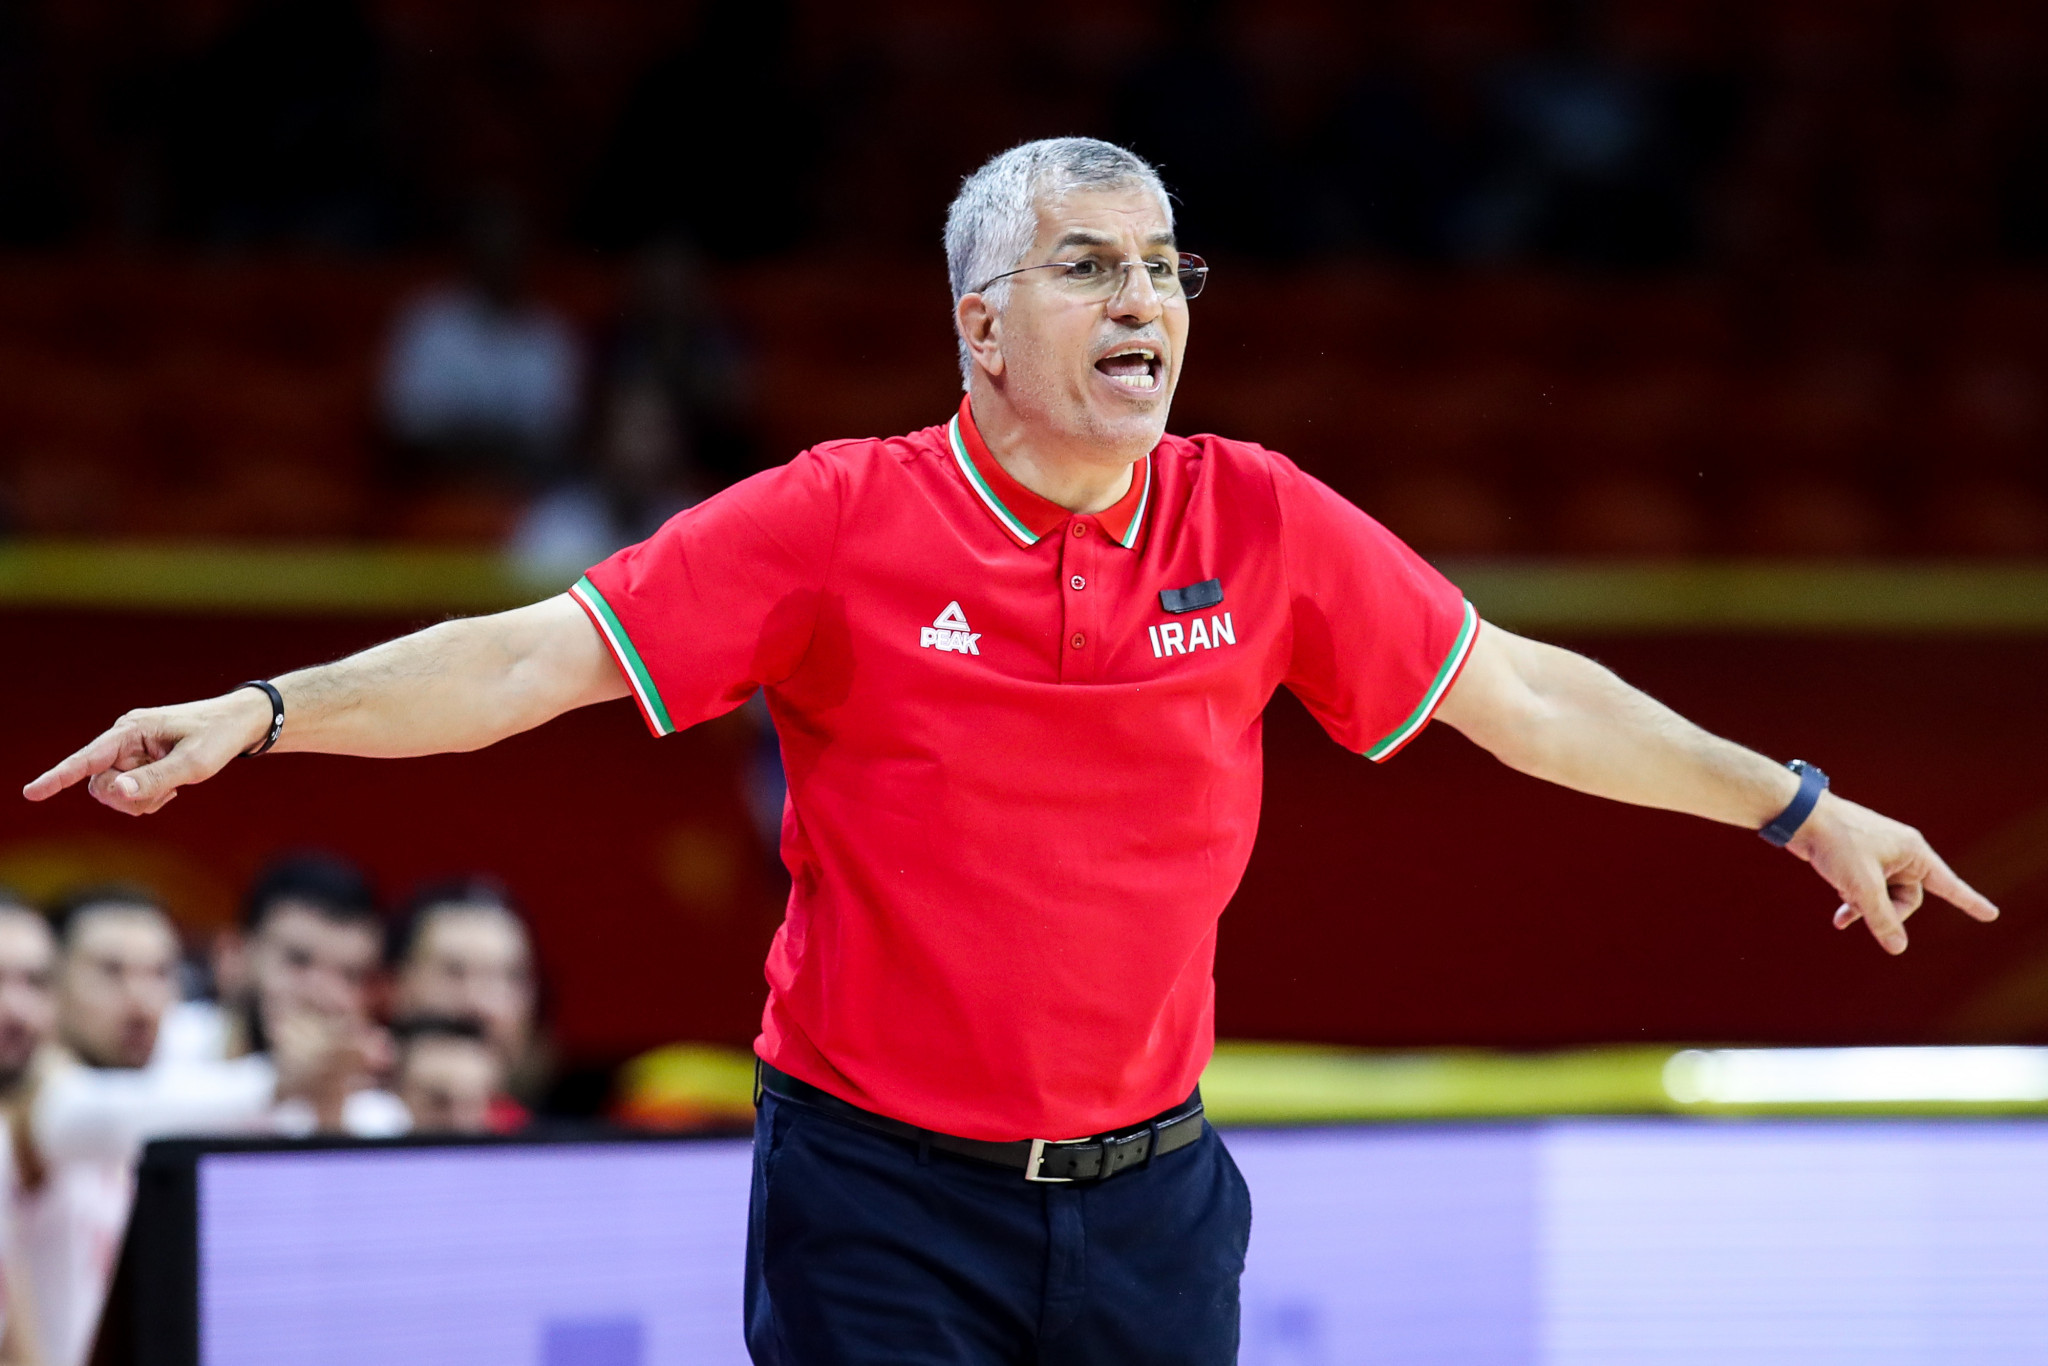 Shahintab confirmed as Iran's men's basketball team coach for Tokyo 2020